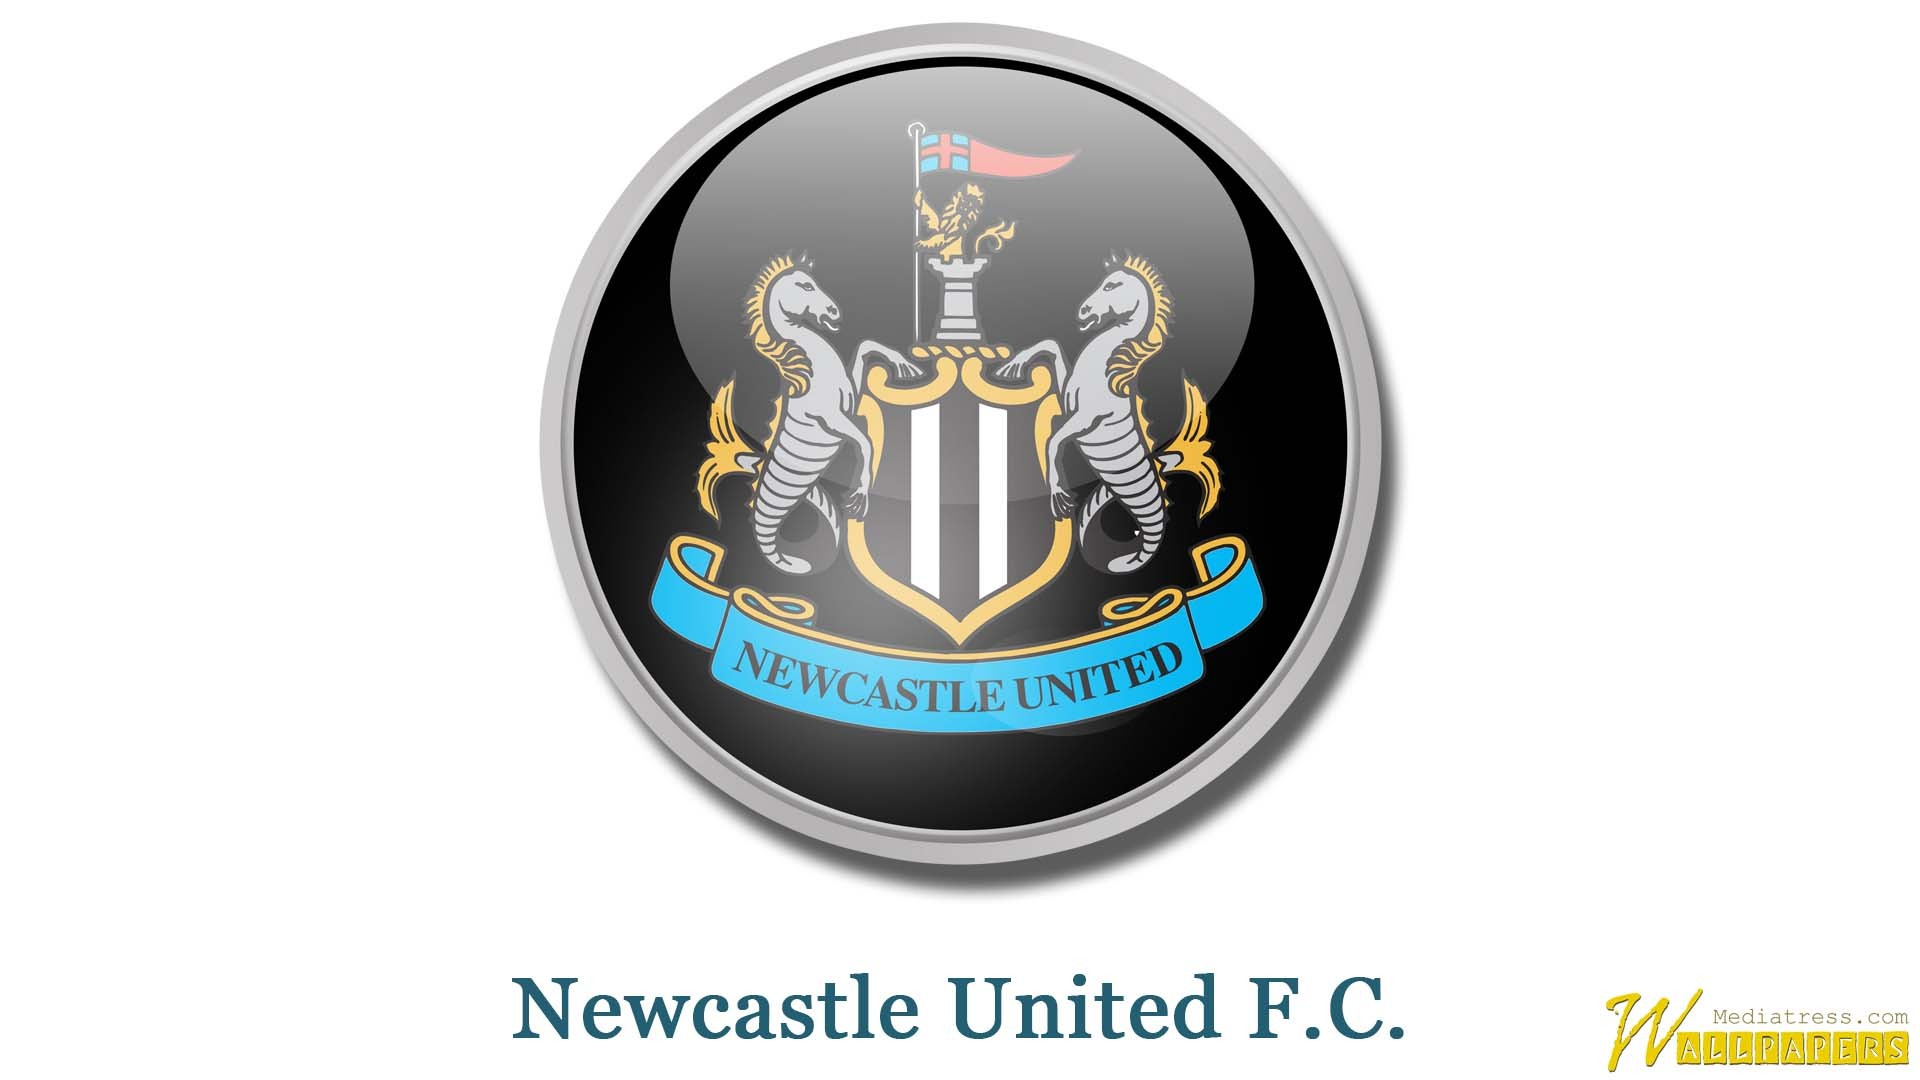 NUFC images NEWCASTLE UNITED wallpaper and background photos 1920x1080